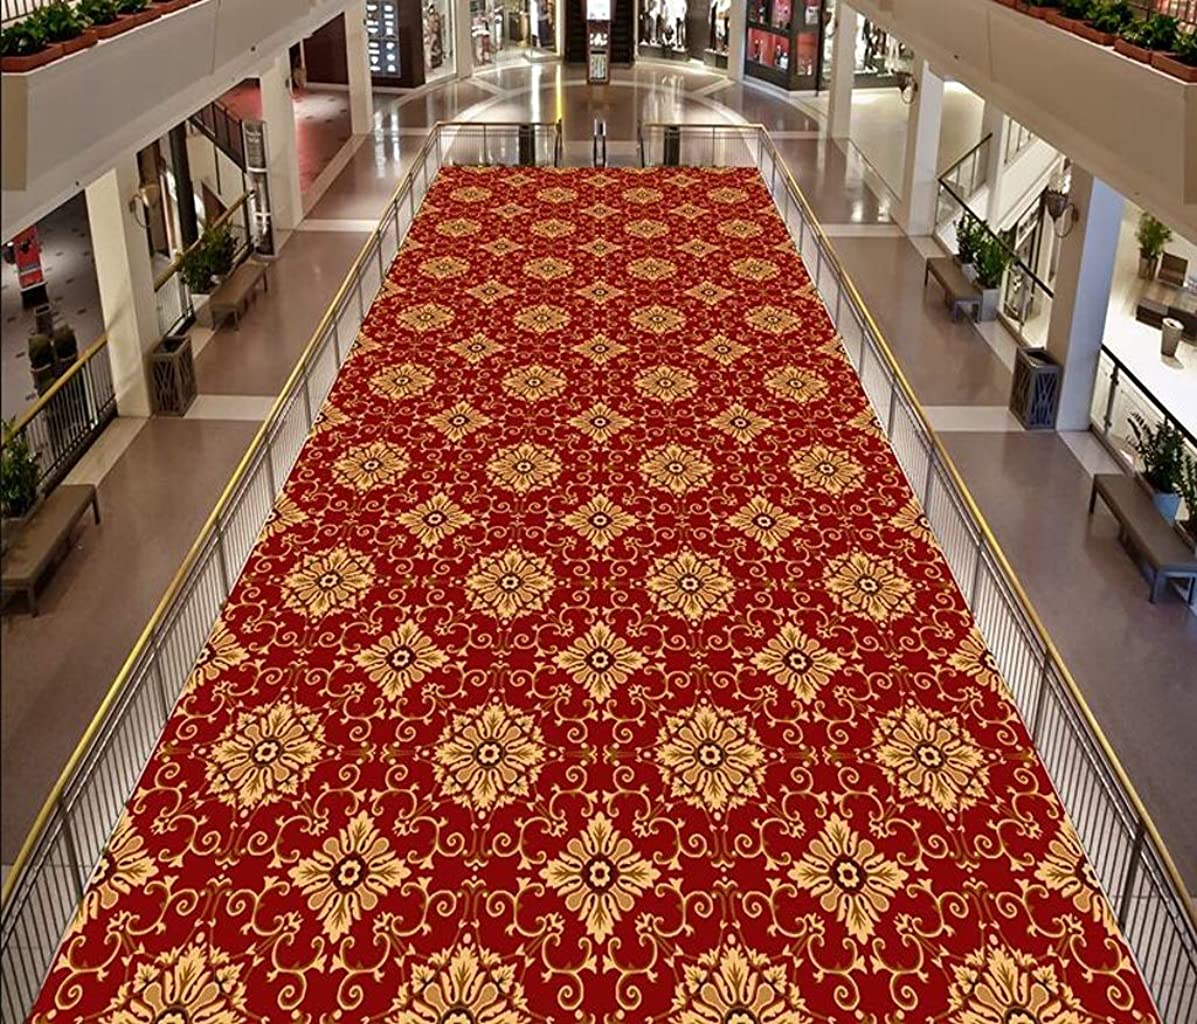 Mbd Corridor Carpet Non-Slip Absorbent 3D Running Carpet, Stair Kitchen and Entrance Soft, Absorbent Custom (Color : D, Size : 1.68m)